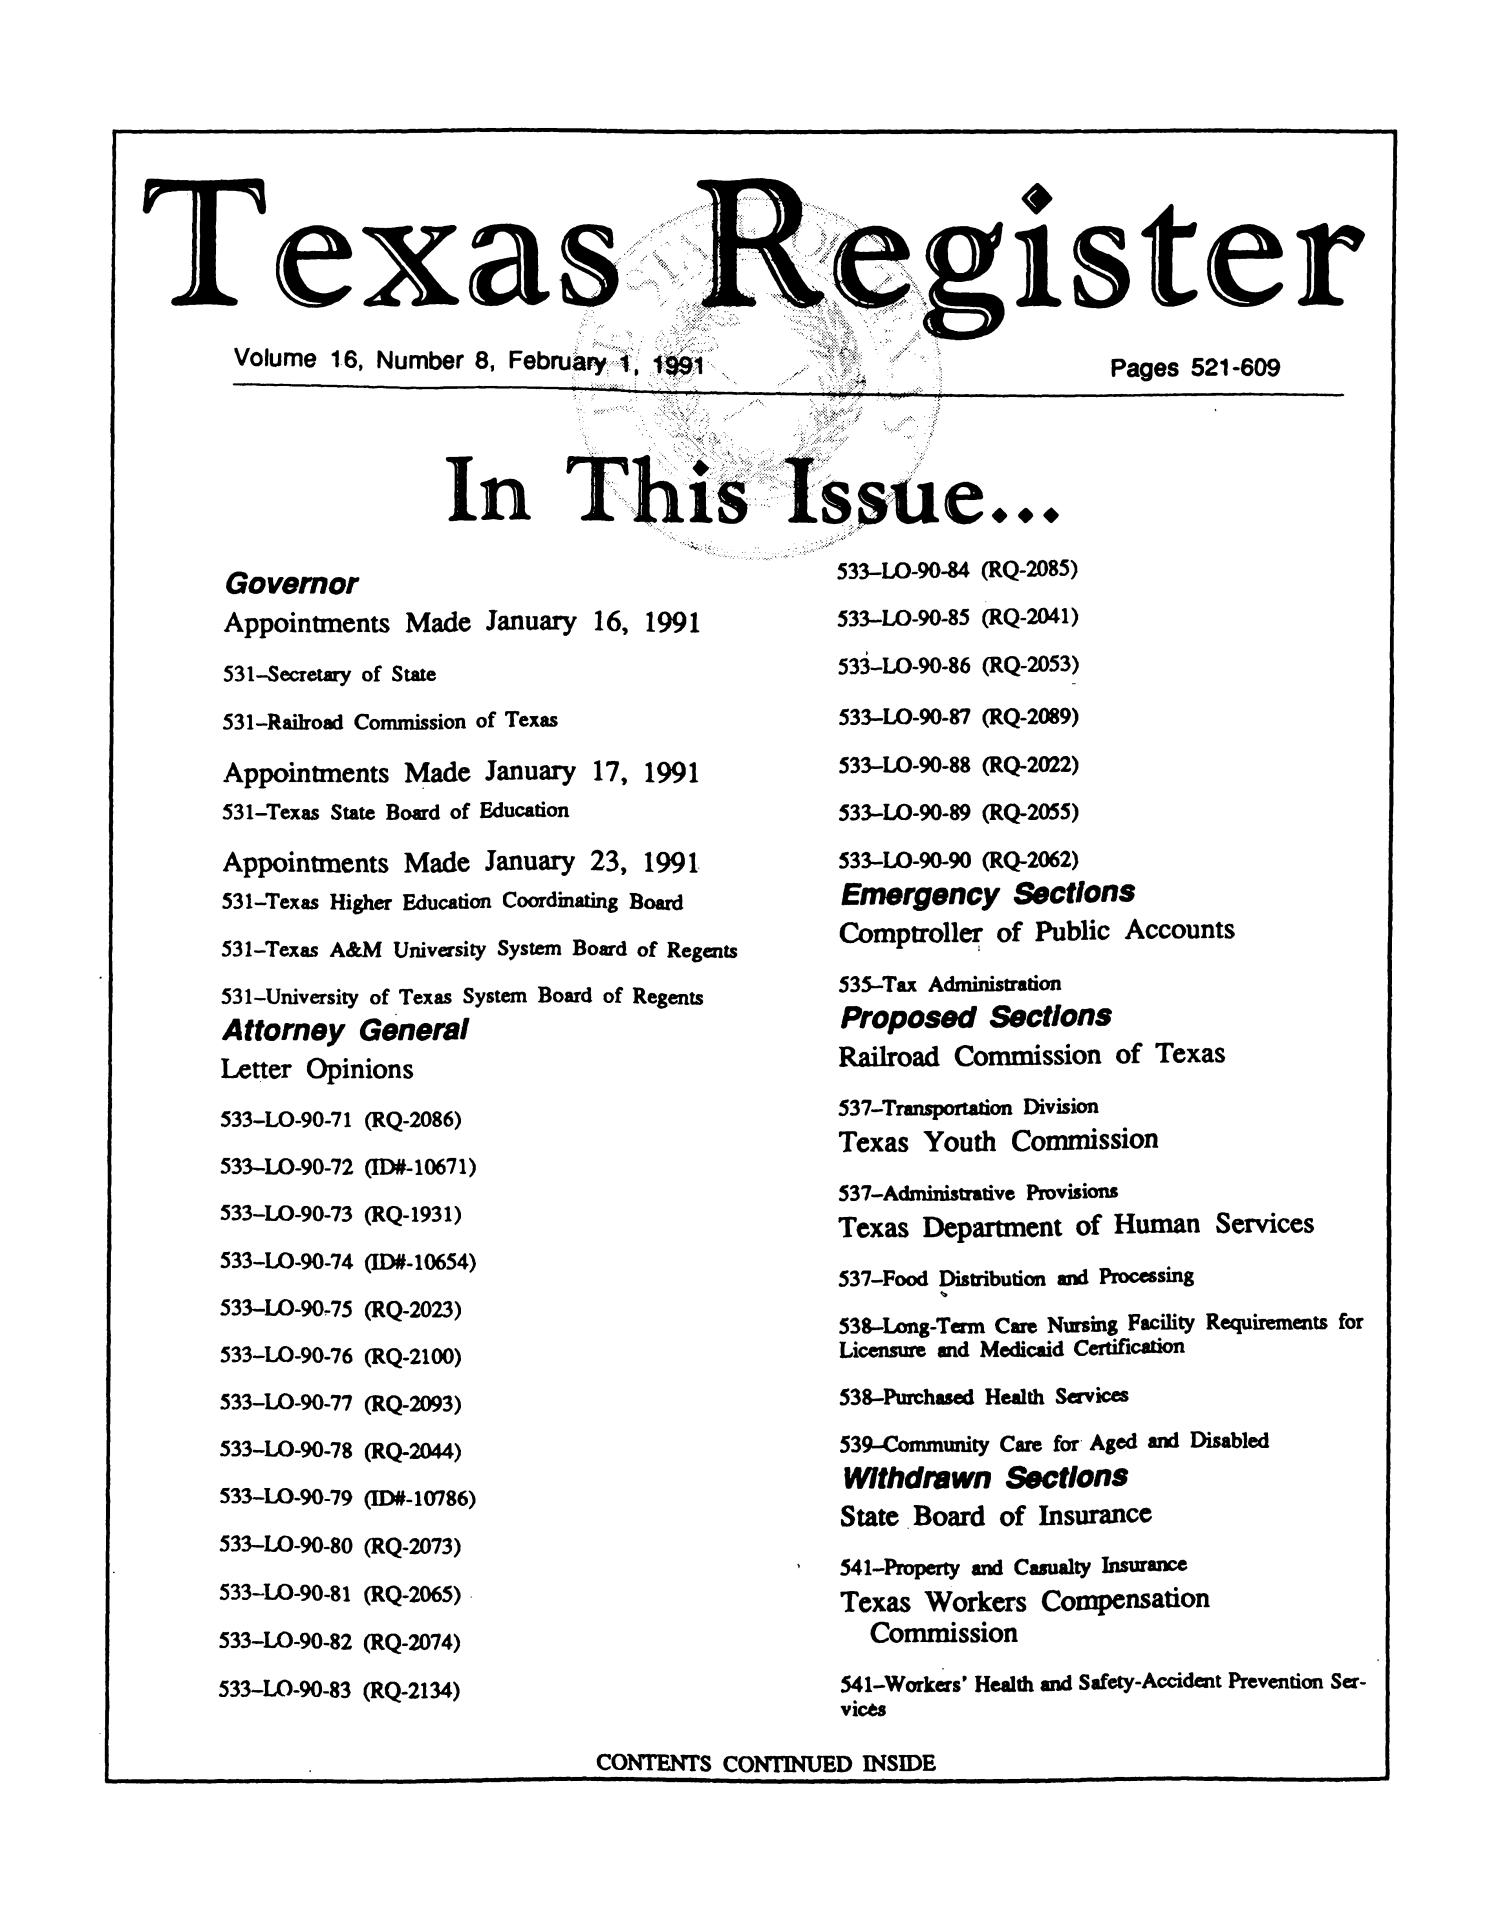 Texas Register, Volume 16, Number 8, Pages 521-609, February 1, 1991